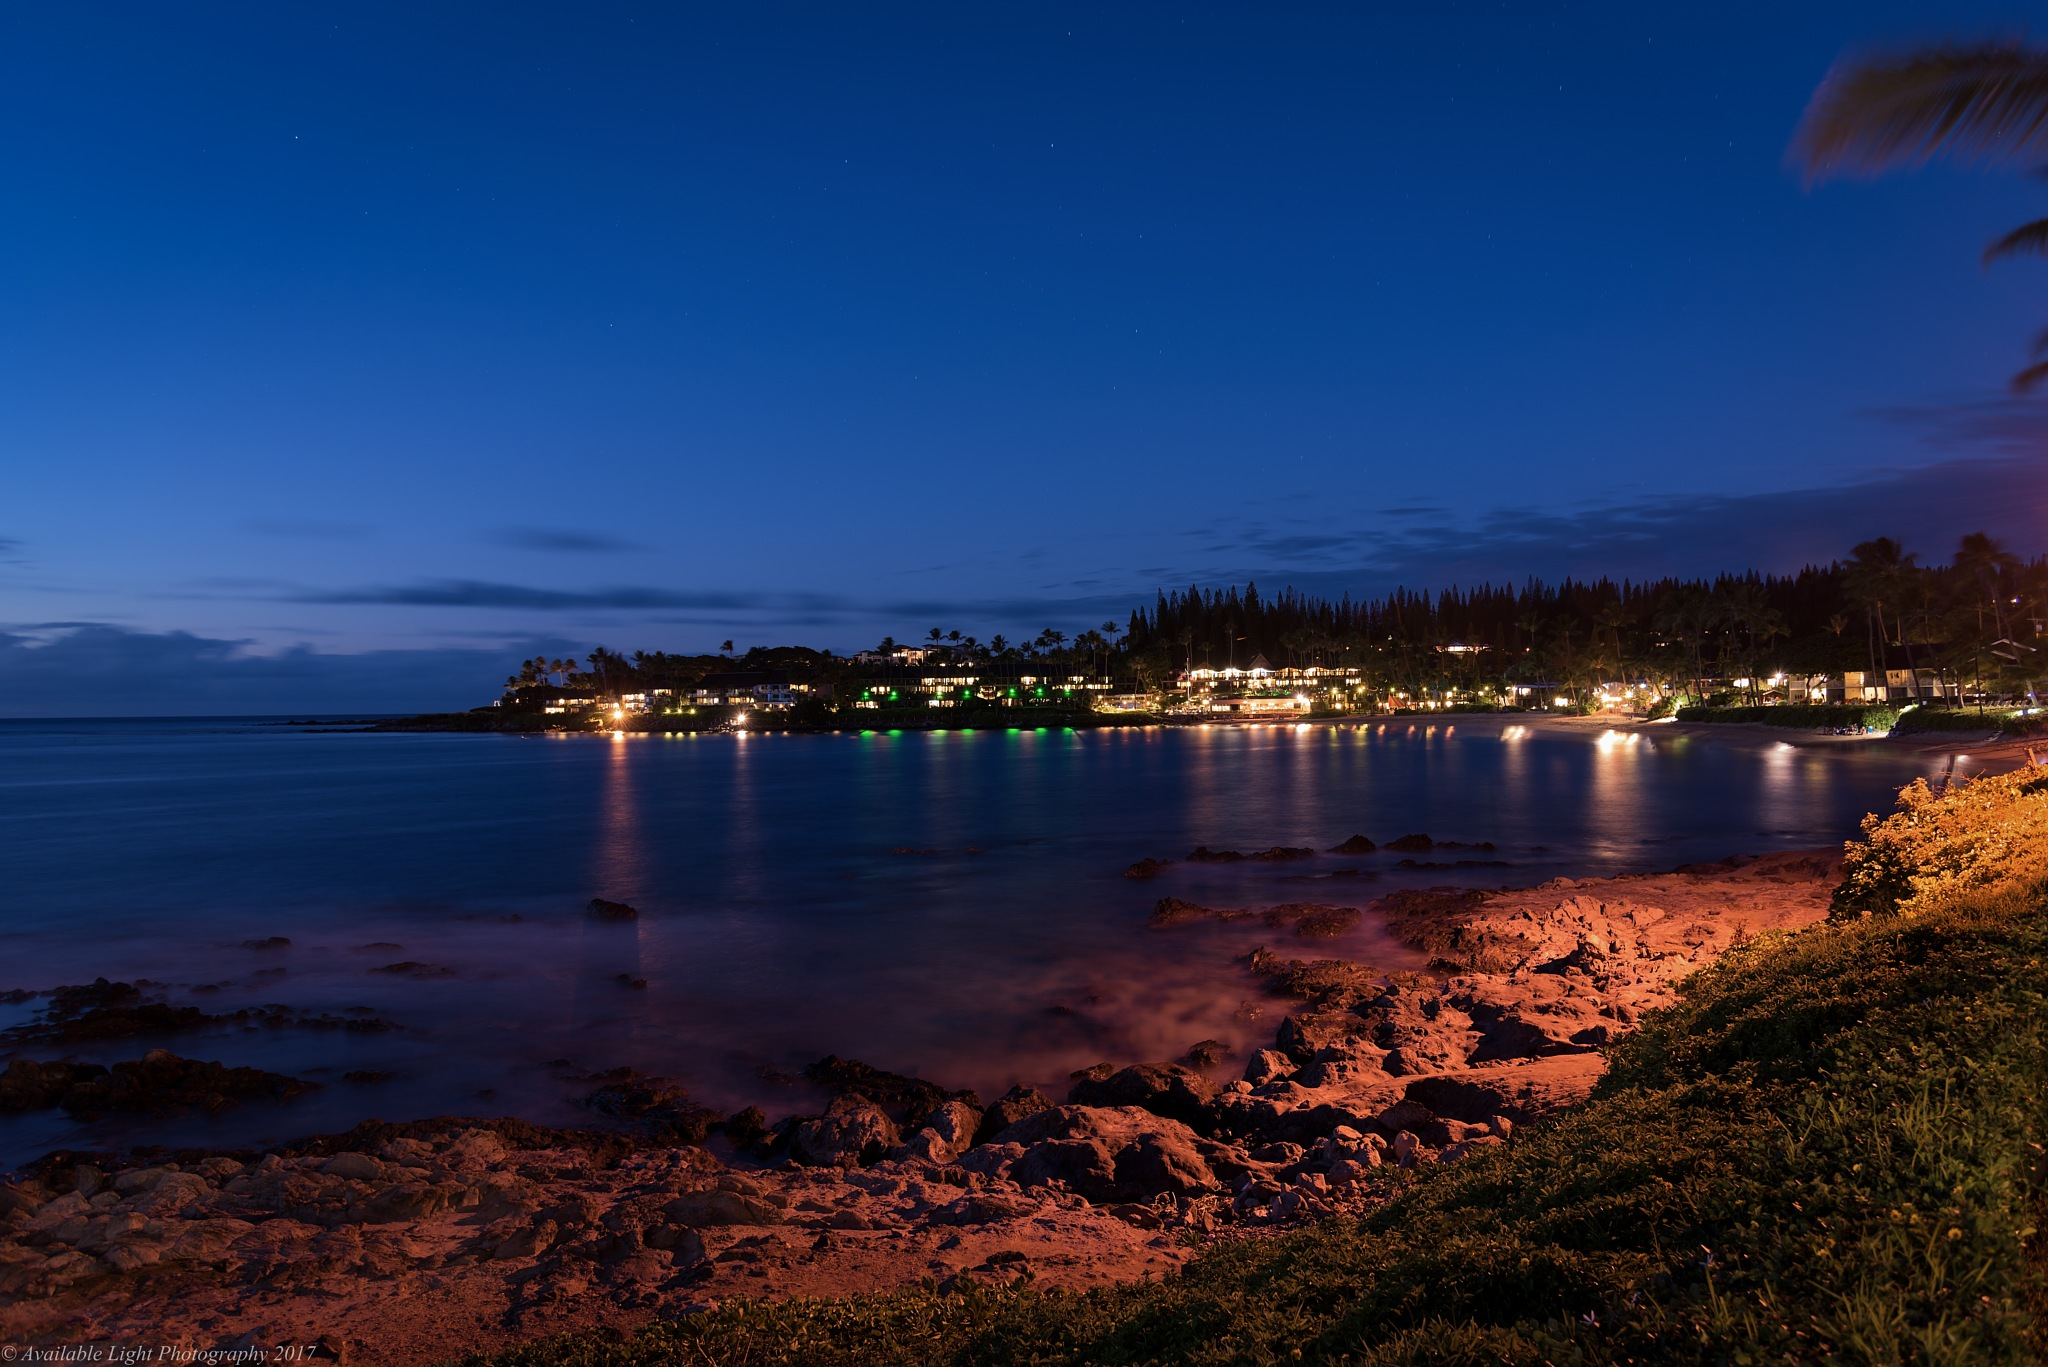 Napili Bay at Night by Available Light Photography